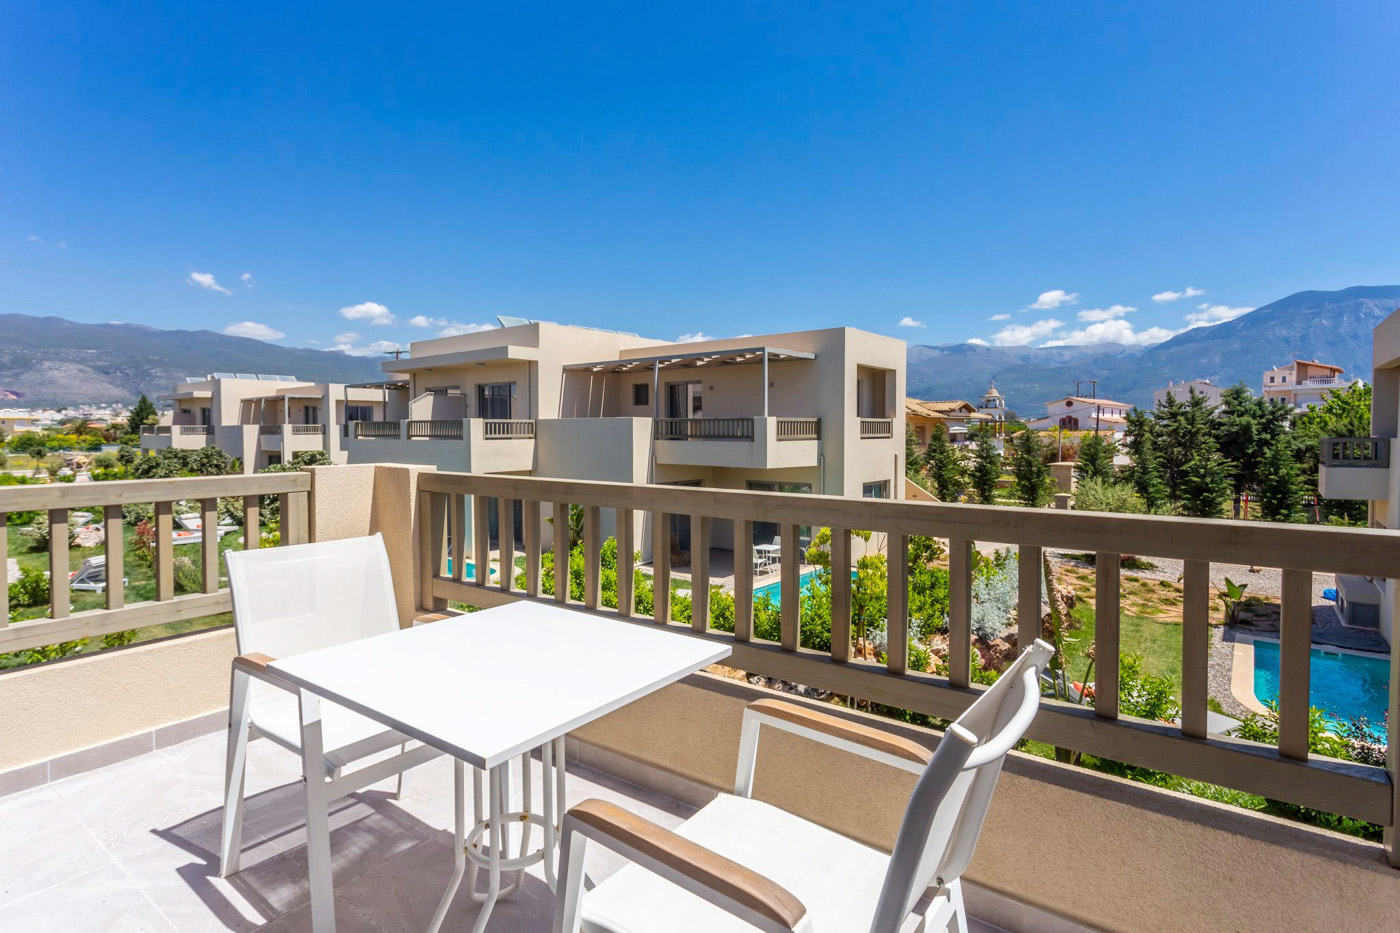 Elysian luxury hotel and spa Kalamata superior room terrace with a view